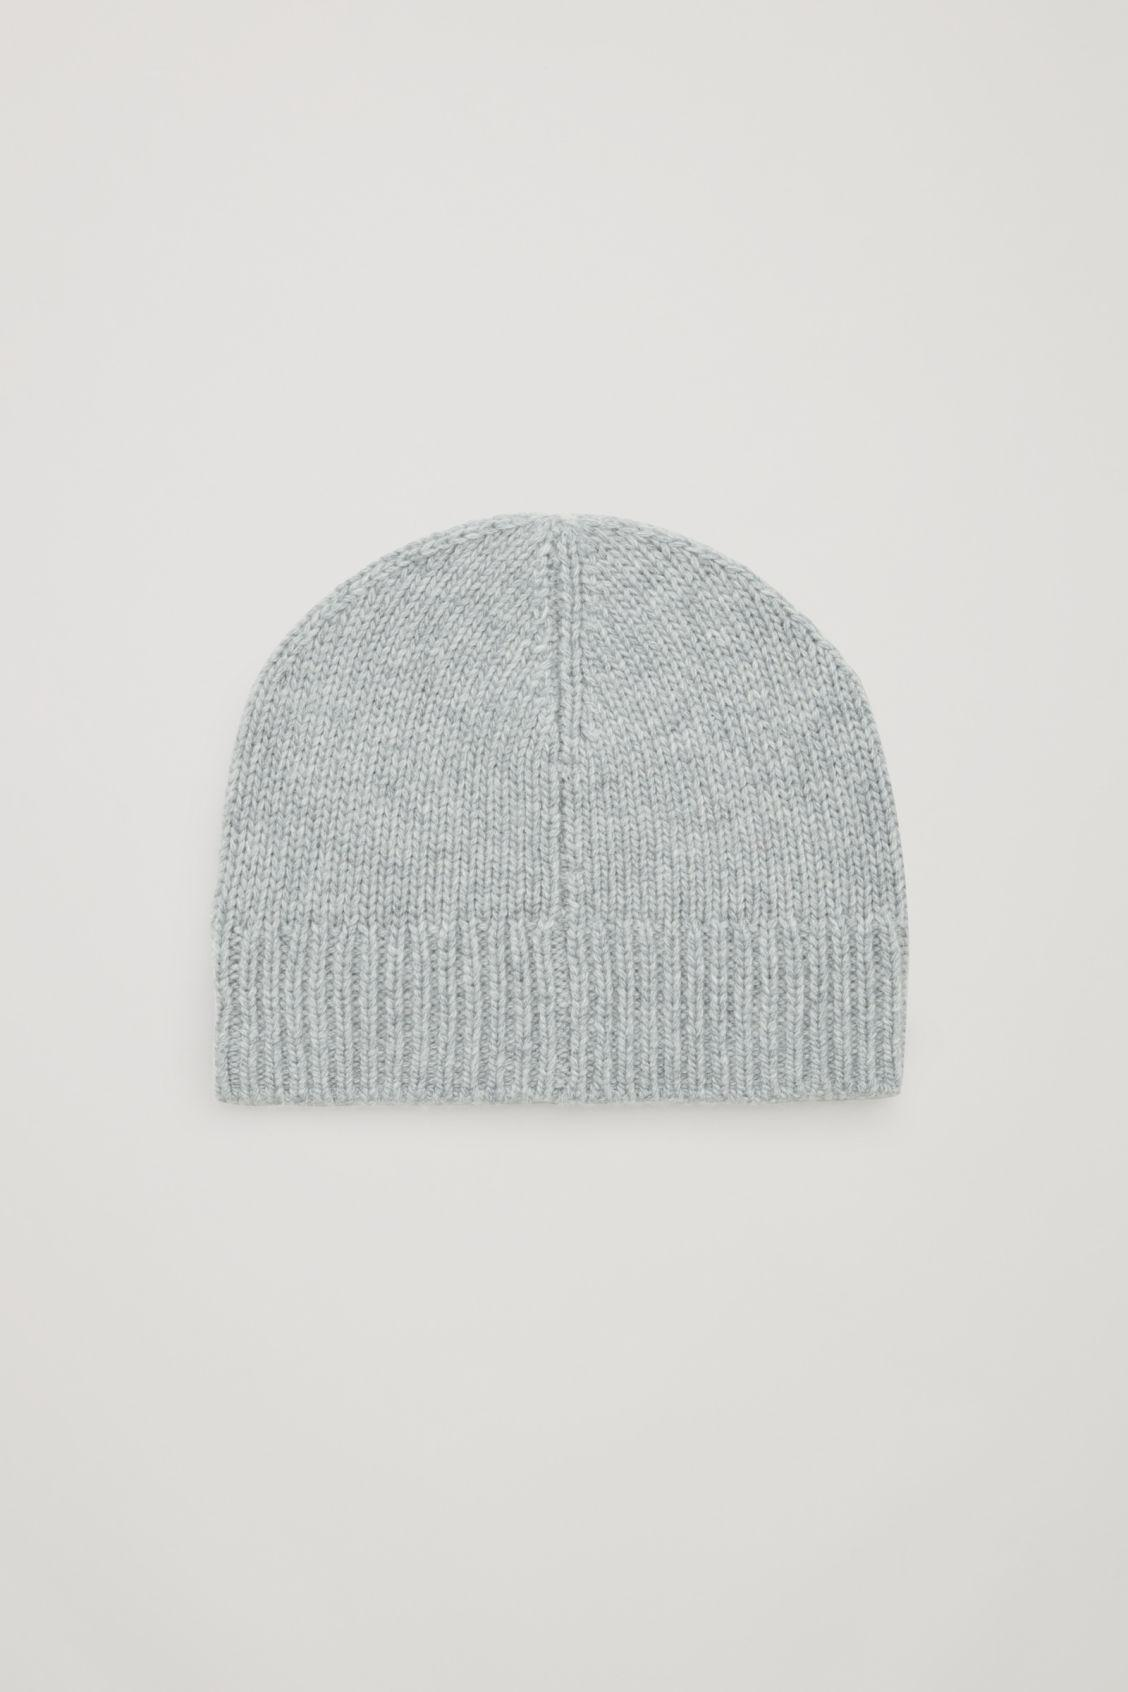 Lyst - COS Cashmere-wool Beanie Hat in Gray bd53edde6c4